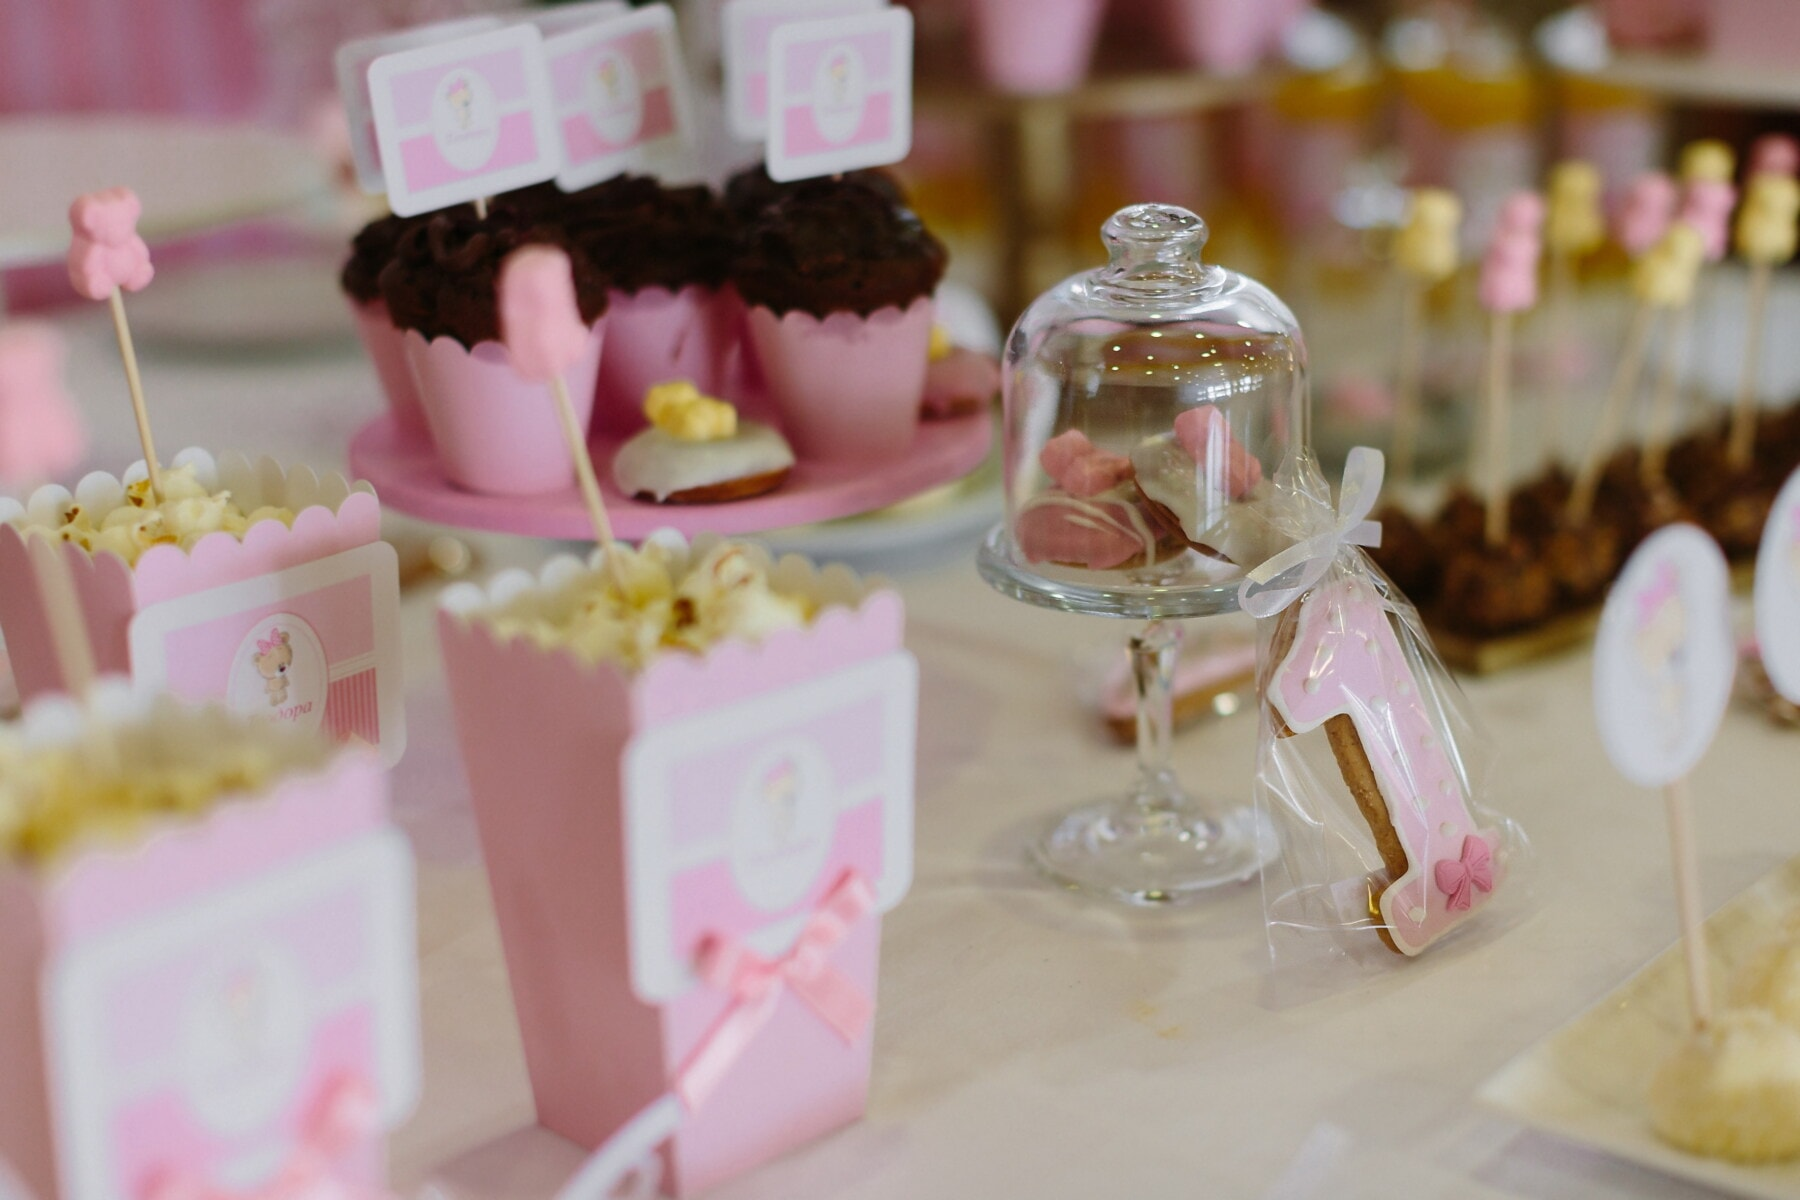 baby, party, birthday, candy, popcorn, dessert, cake, indoors, chocolate, reception